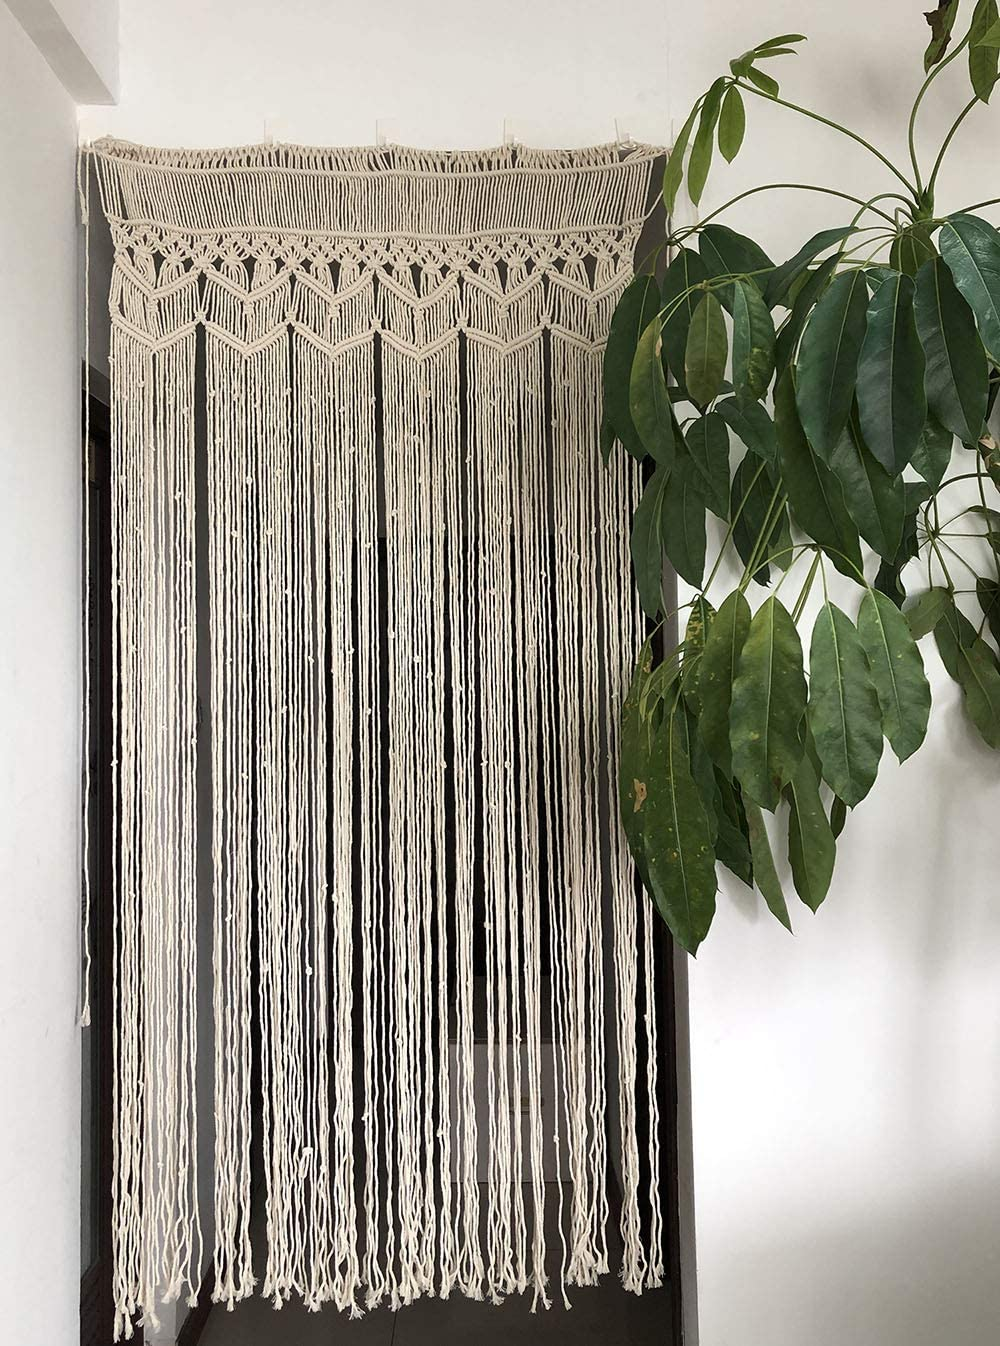 "Macrame Curtain Panel for Doorway Wedding, Handmade Woven Wall Hanging Tapestry, Birthday Party Backdrop, 37.5"" L x 77"" W"